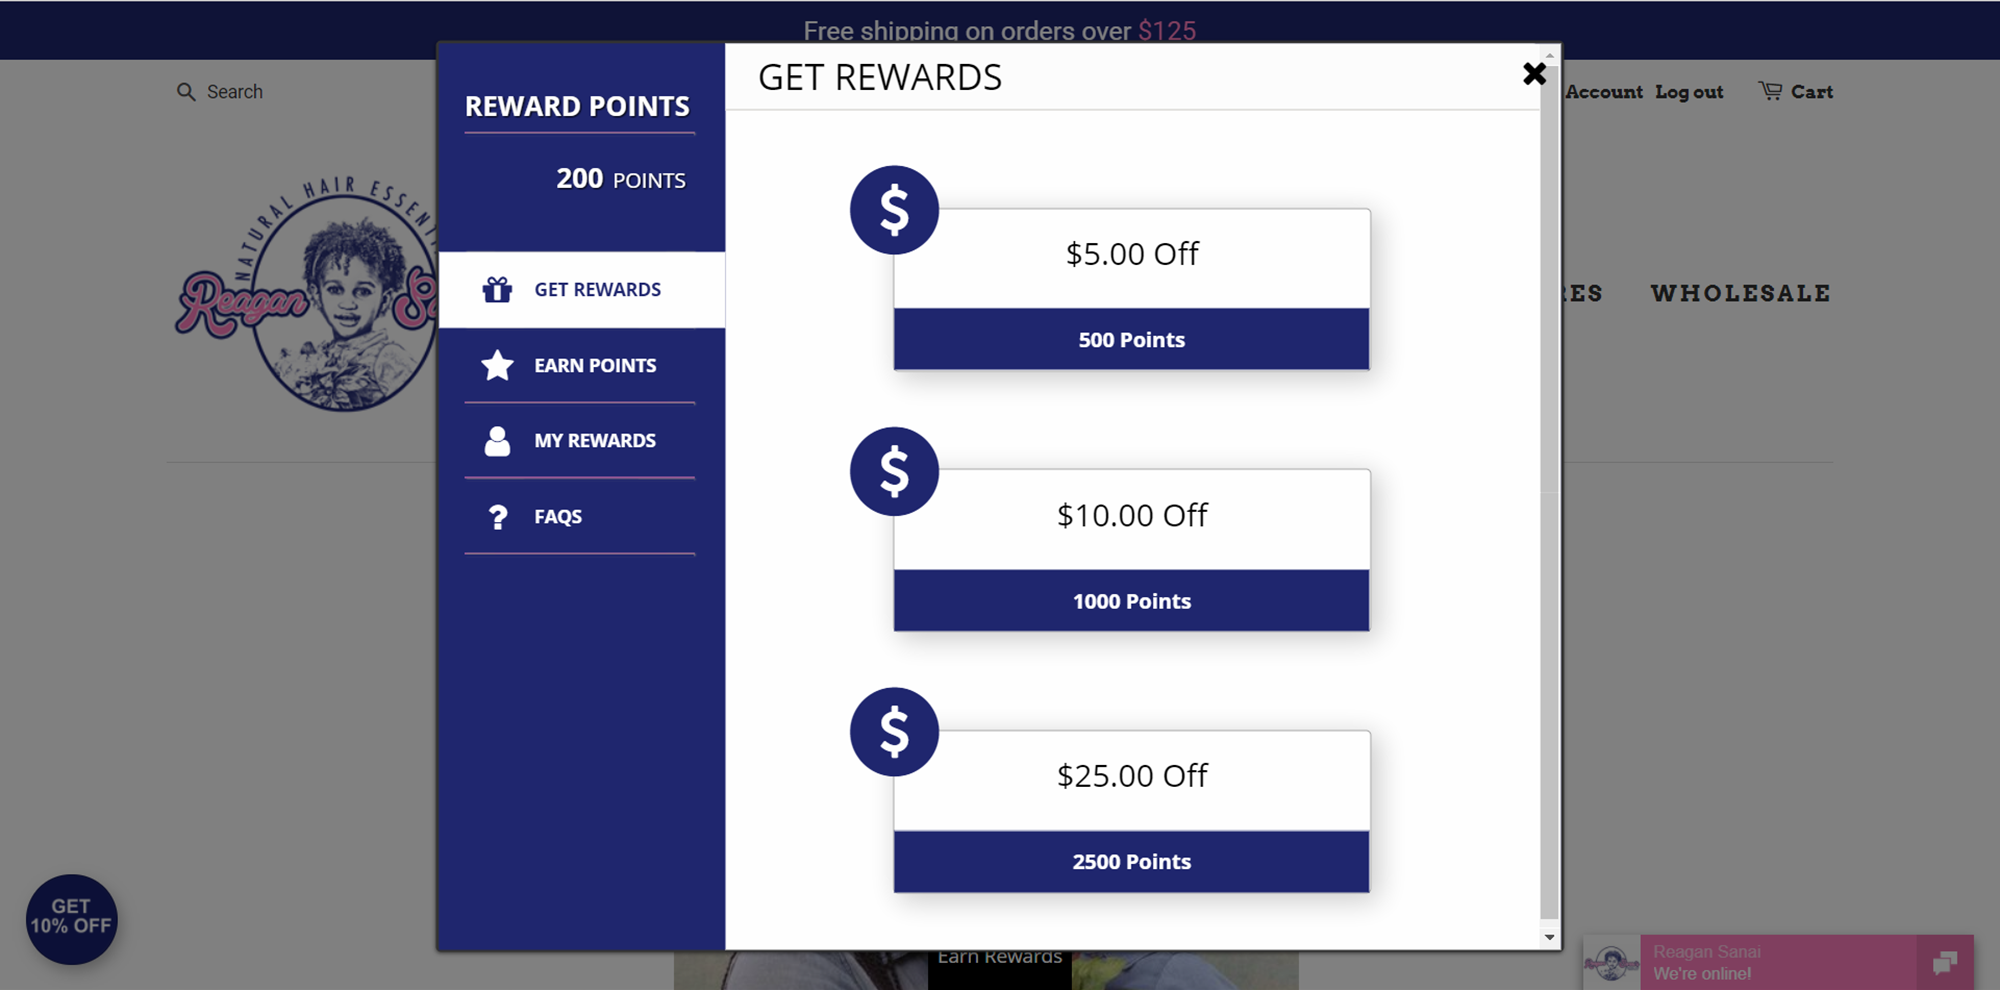 Reagan Sanai redeem rewards